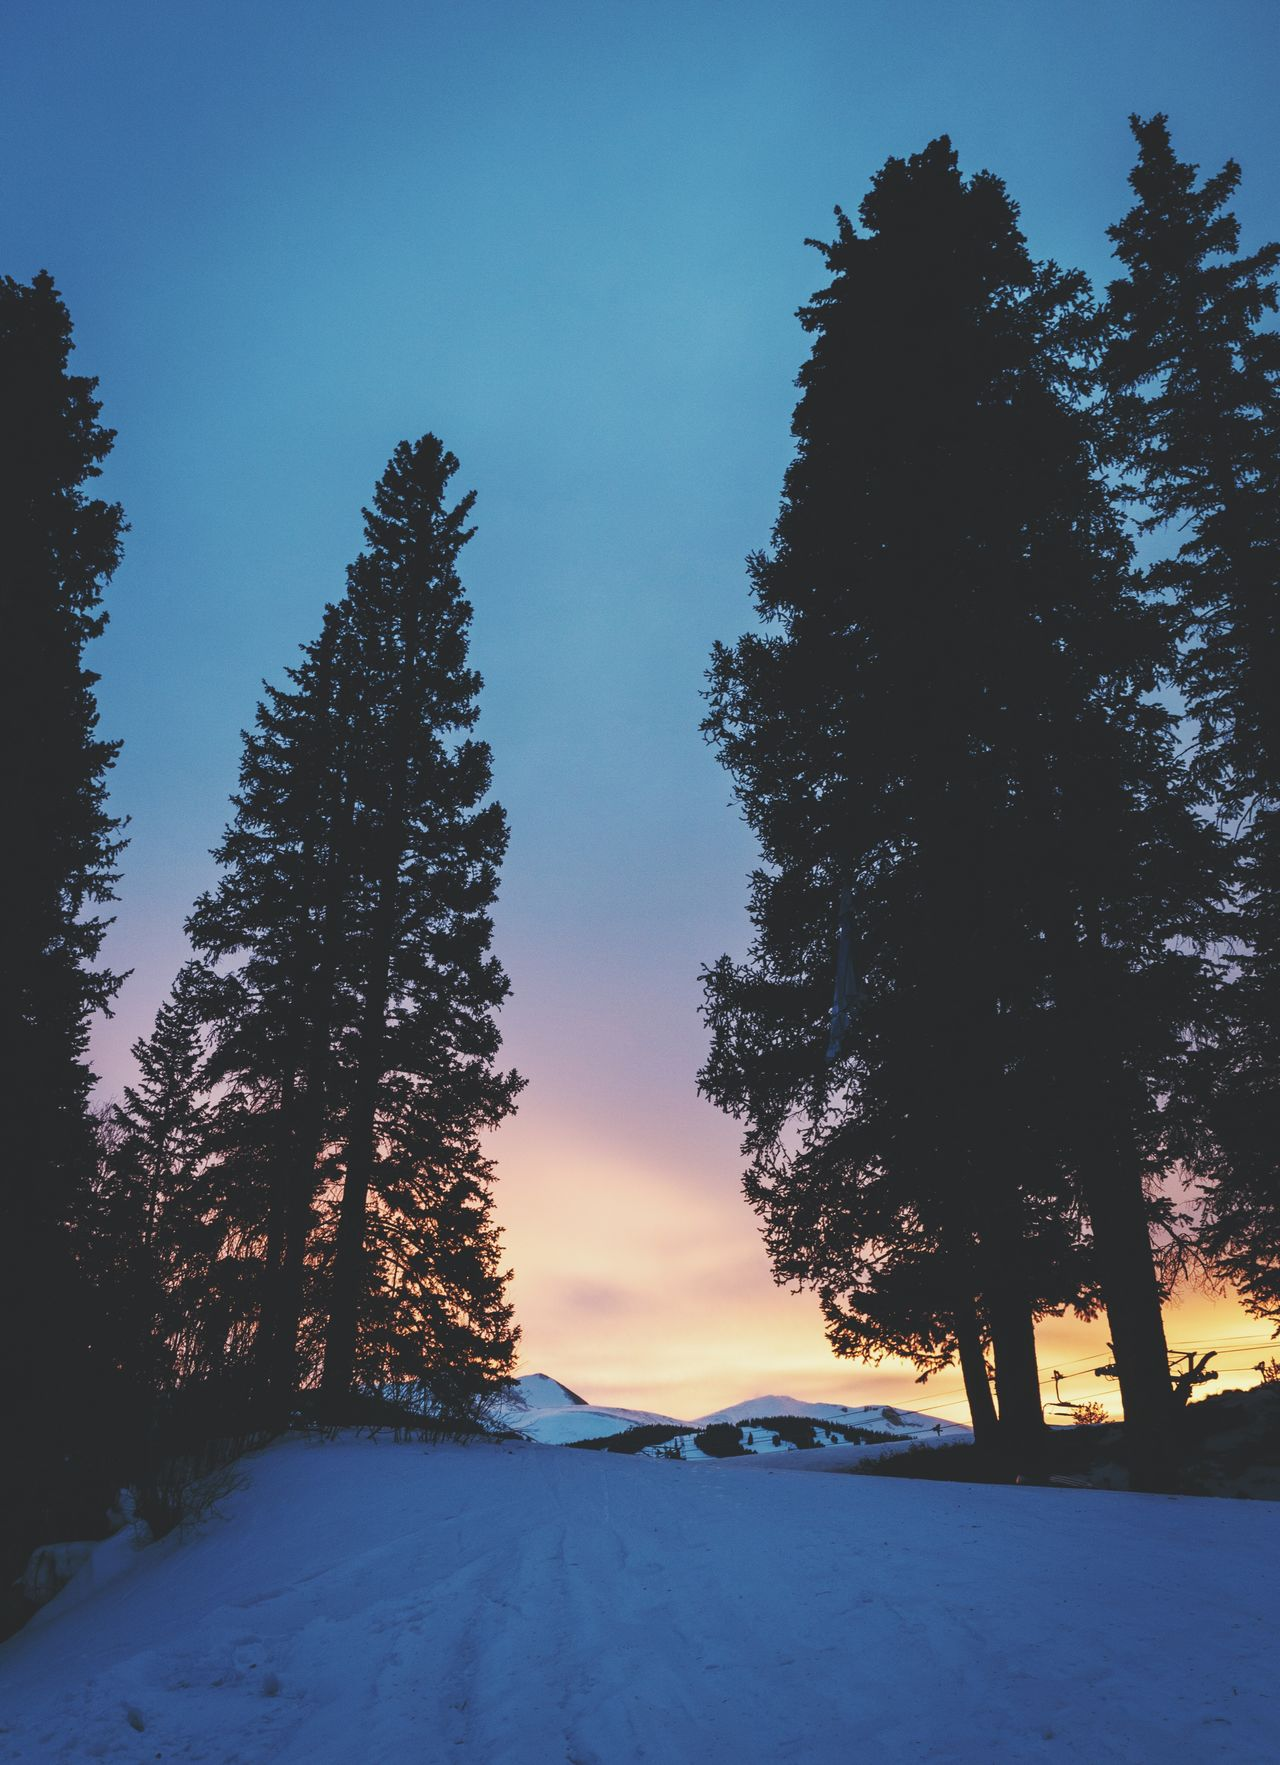 Tree Beauty In Nature Nature Tranquility Tranquil Scene Sky Scenics Snow Outdoors Low Angle View Winter Cold Temperature Growth No People Clear Sky Day Landscape